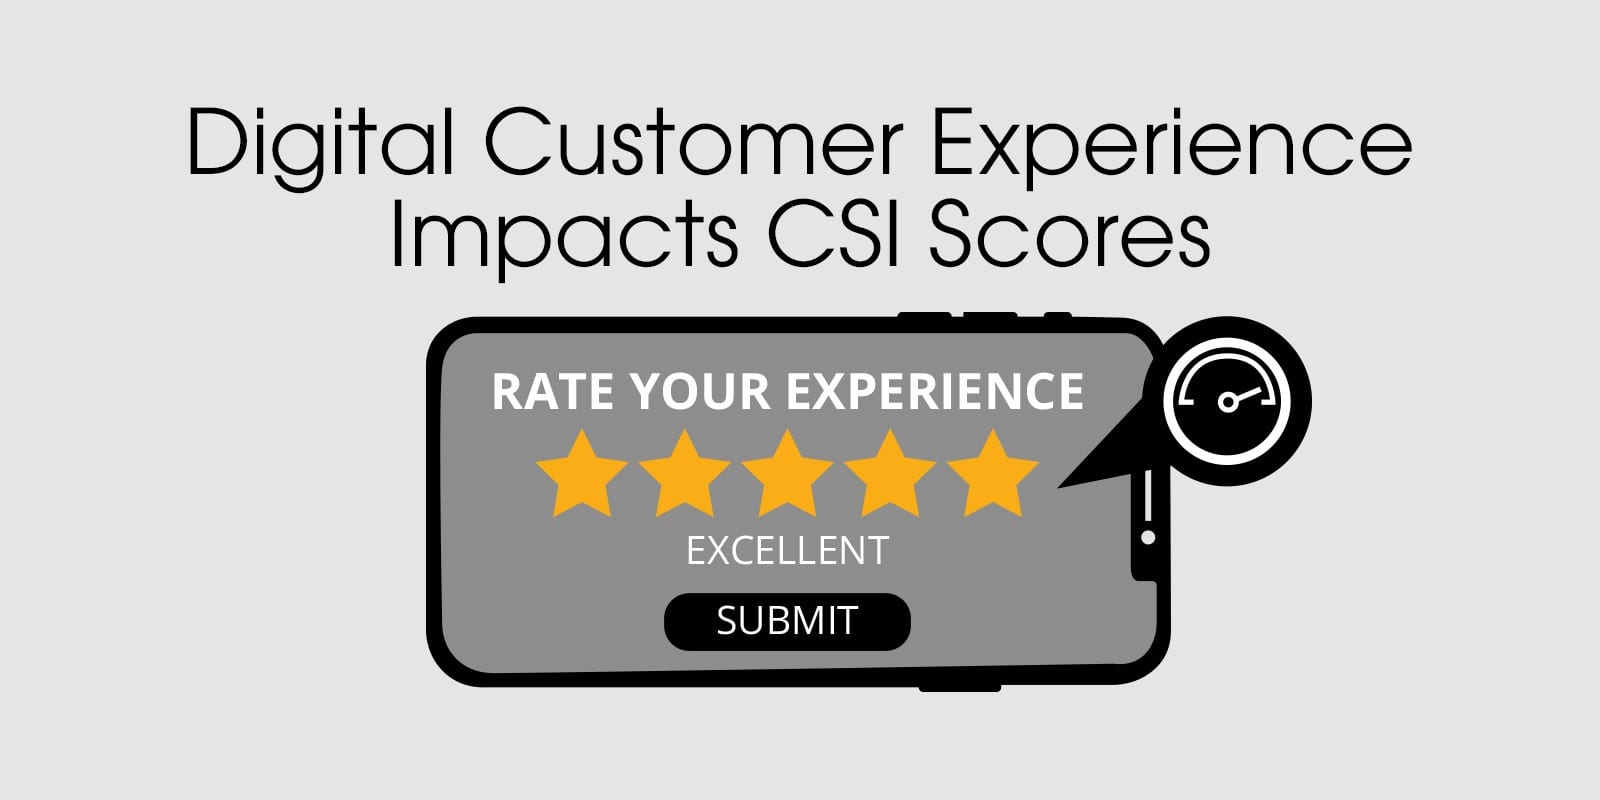 digital customer experience impacts csi scores